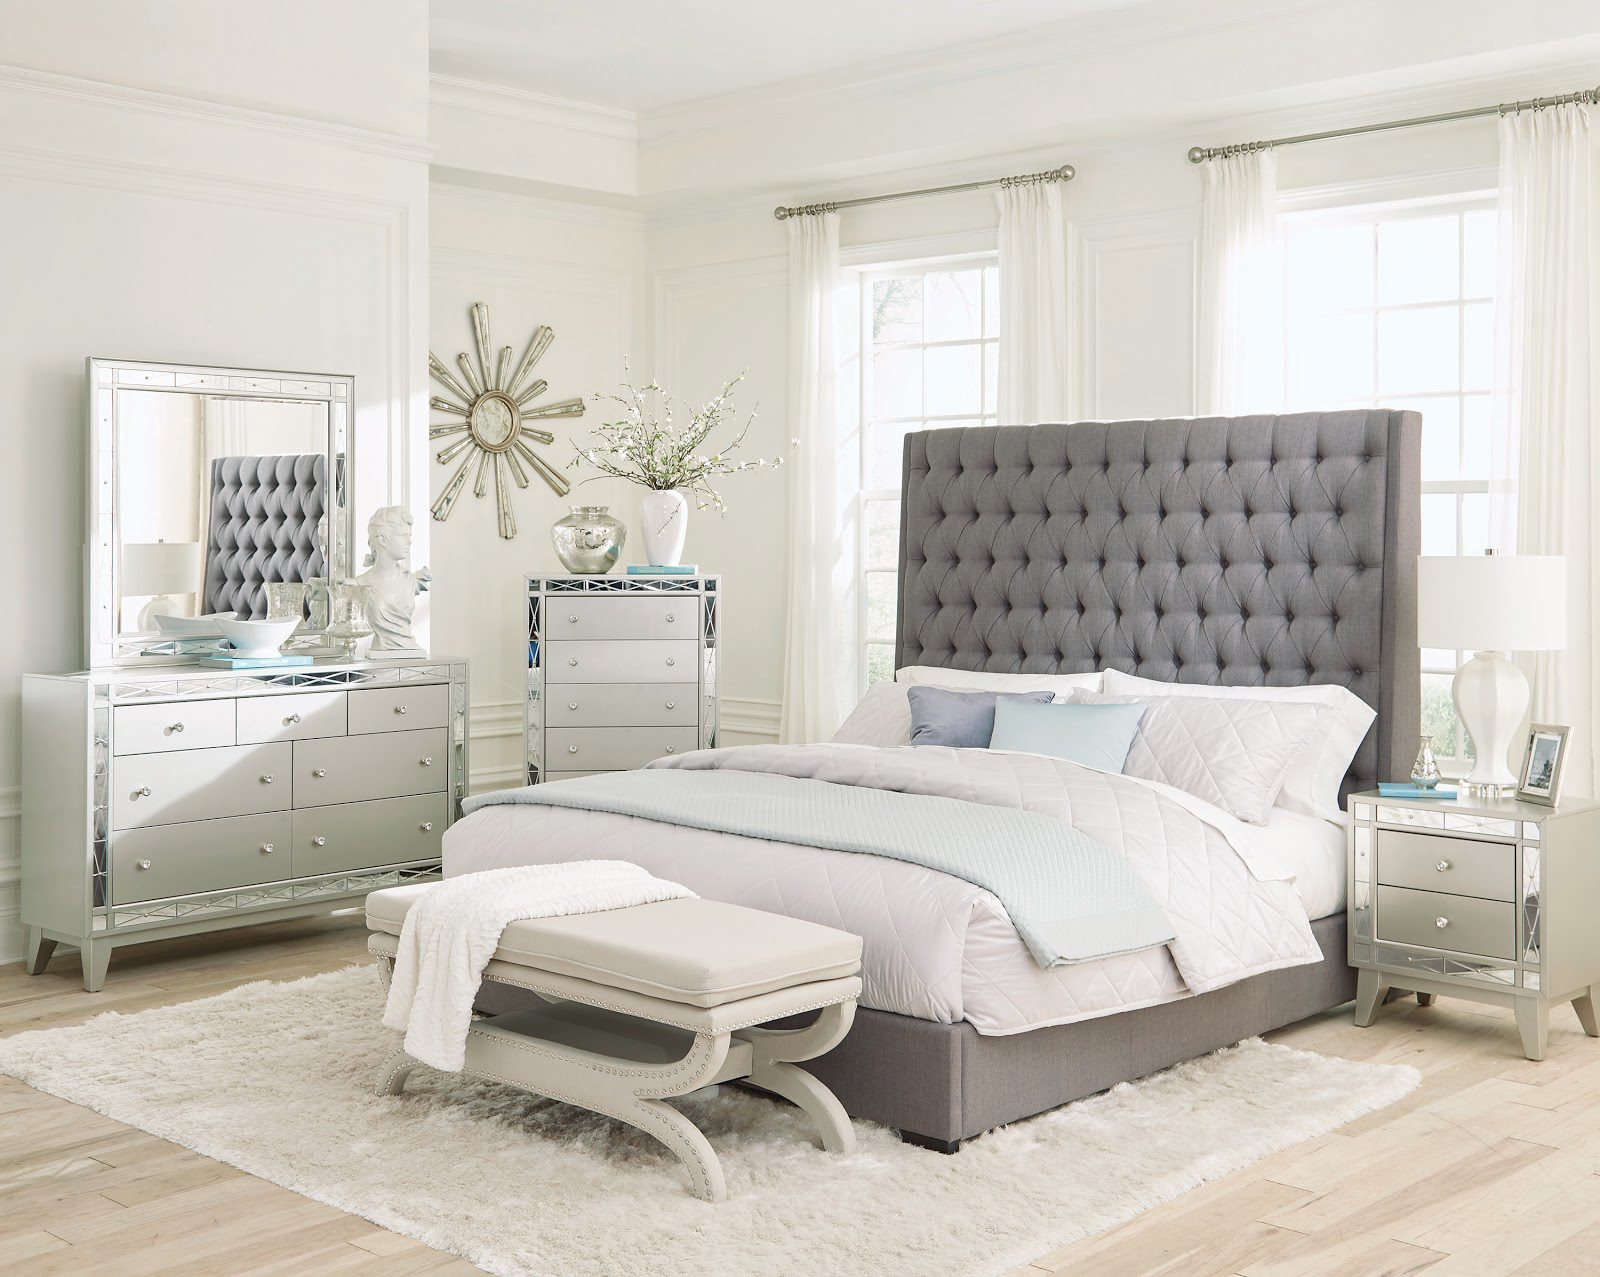 Small master bedroom ideas: Camille bedroom set grey and metallic mercury